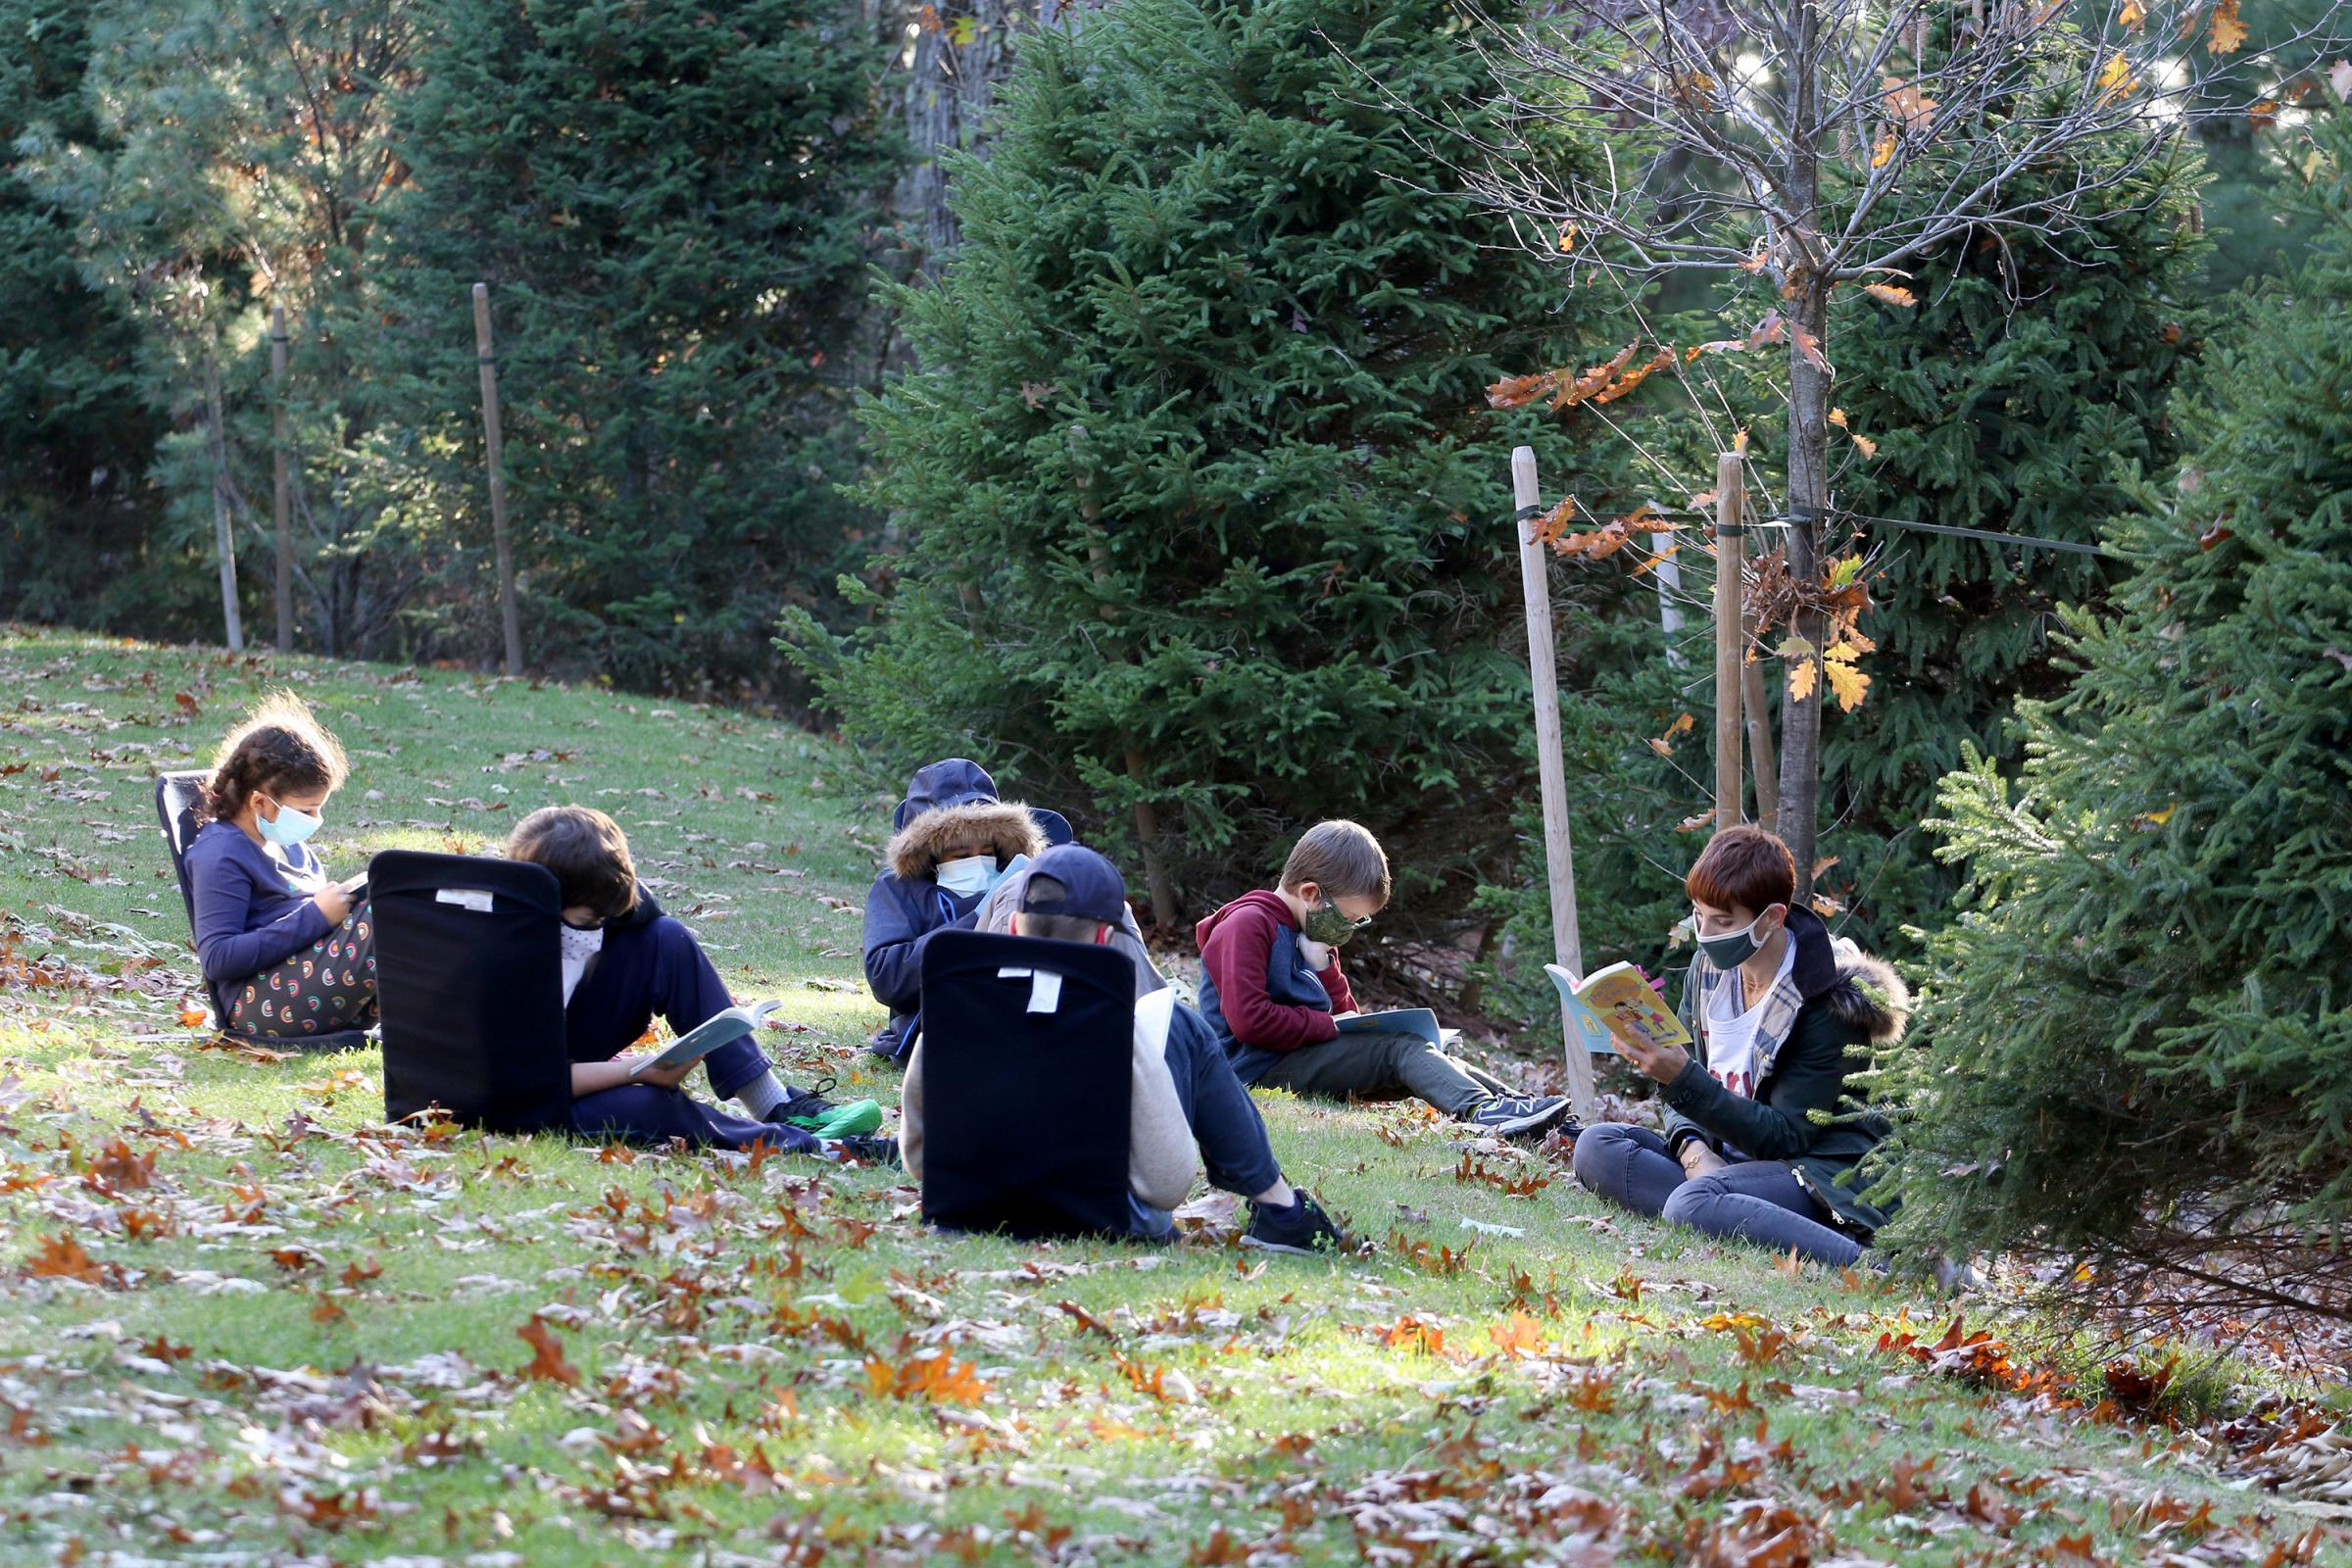 A reading group outdoors